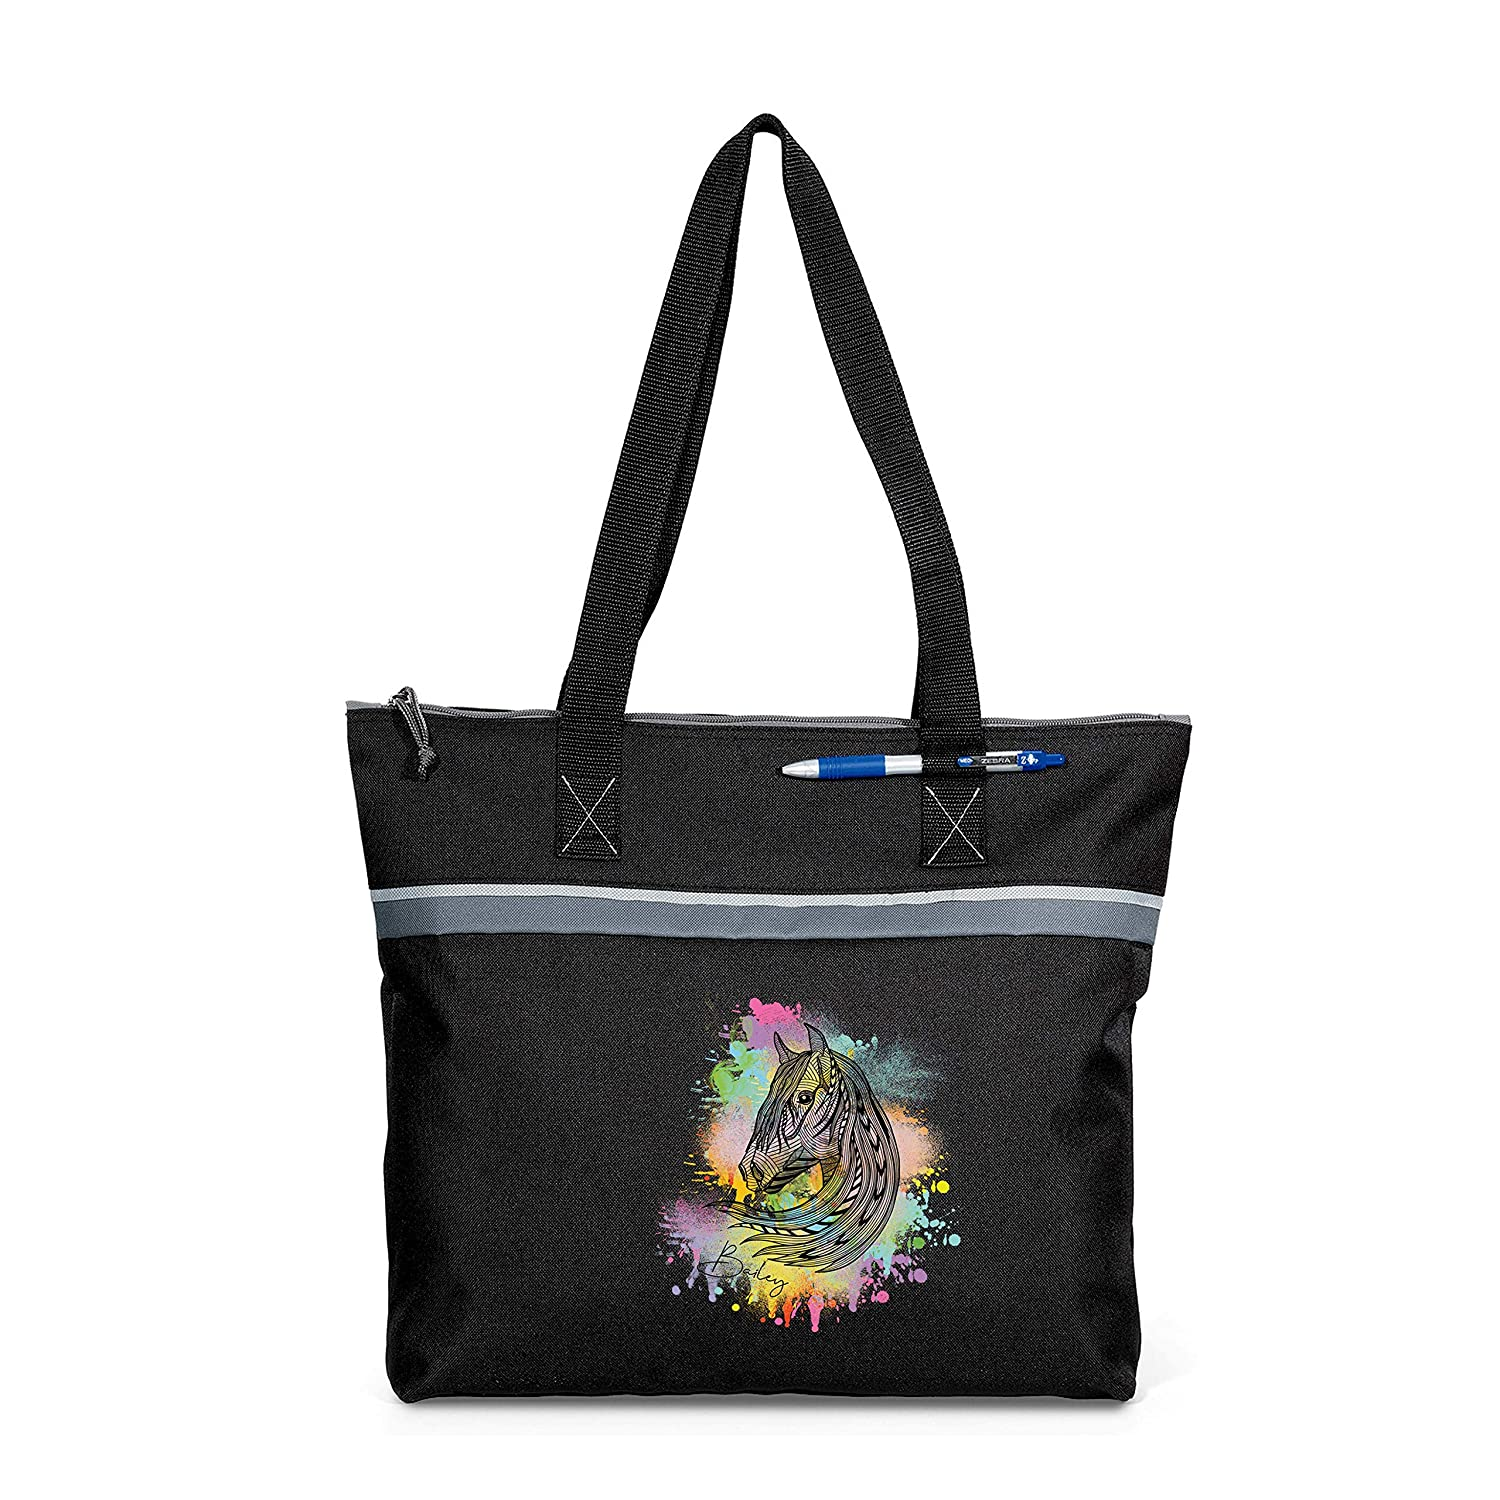 Hand Drawn Horse Head Personalized Tote Limited price sale Beach Our shop most popular Small Printed